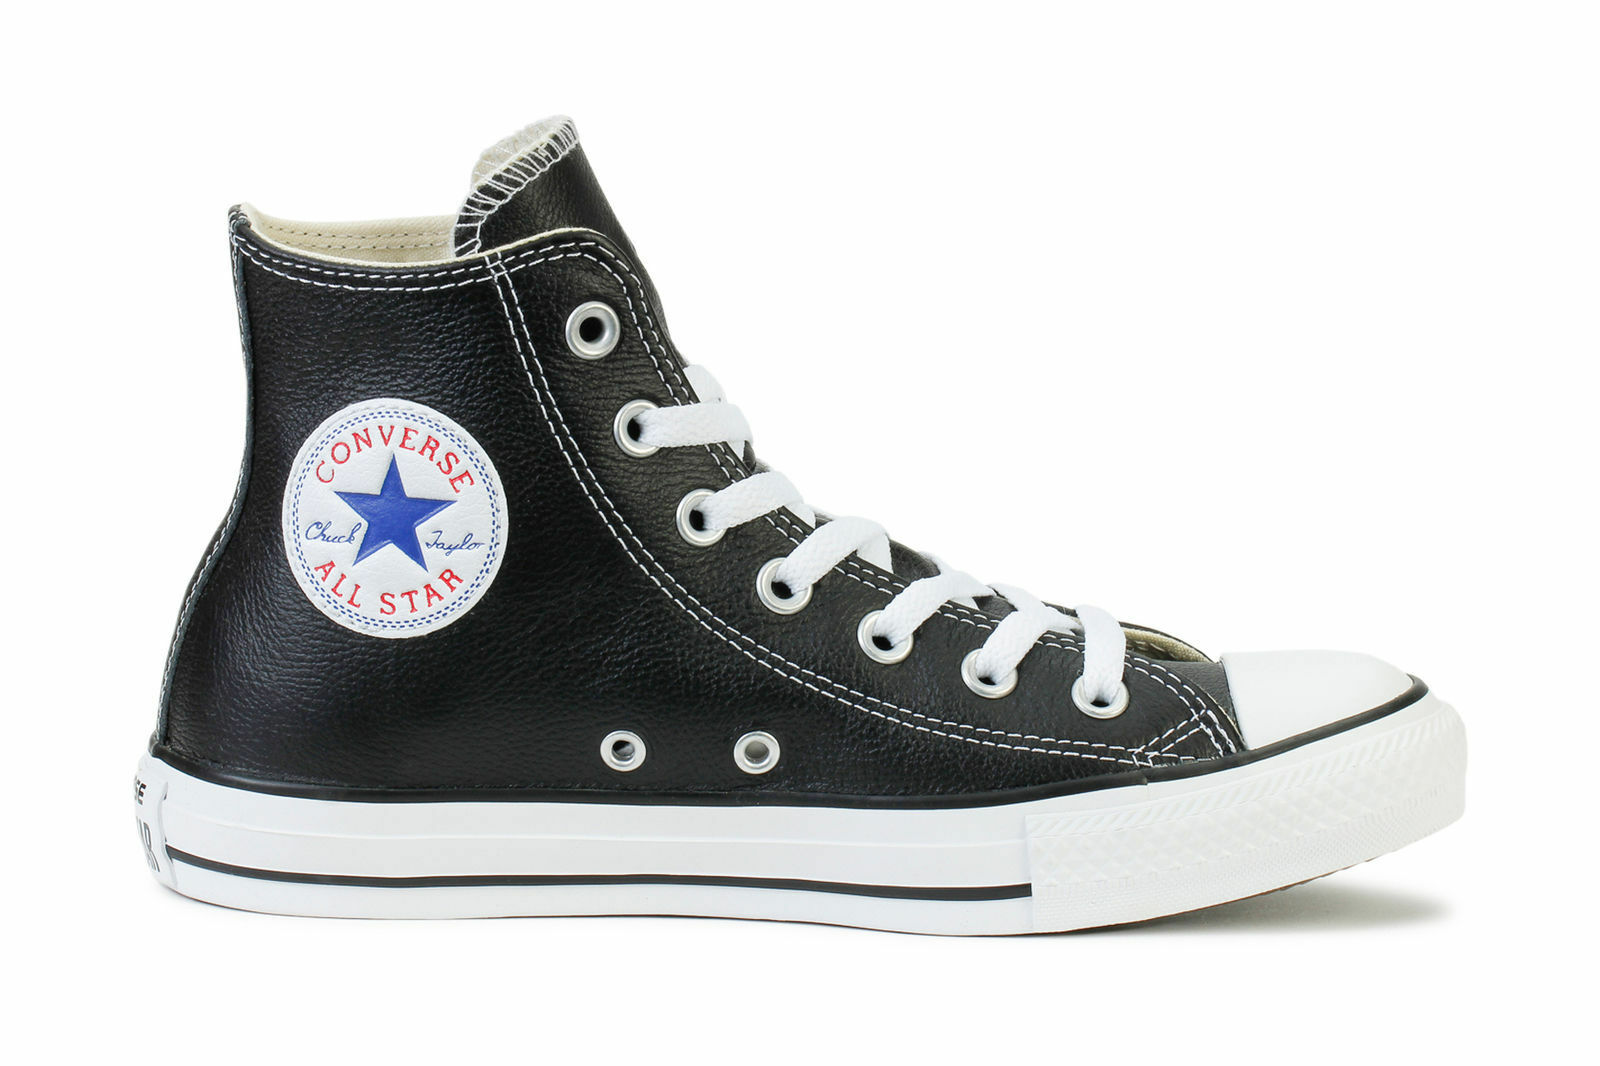 51fc0d5ccd7c Converse SNEAKERS Chuck Taylor All Star Hi Classic Black Leather 132170c 8  Men   10 Women